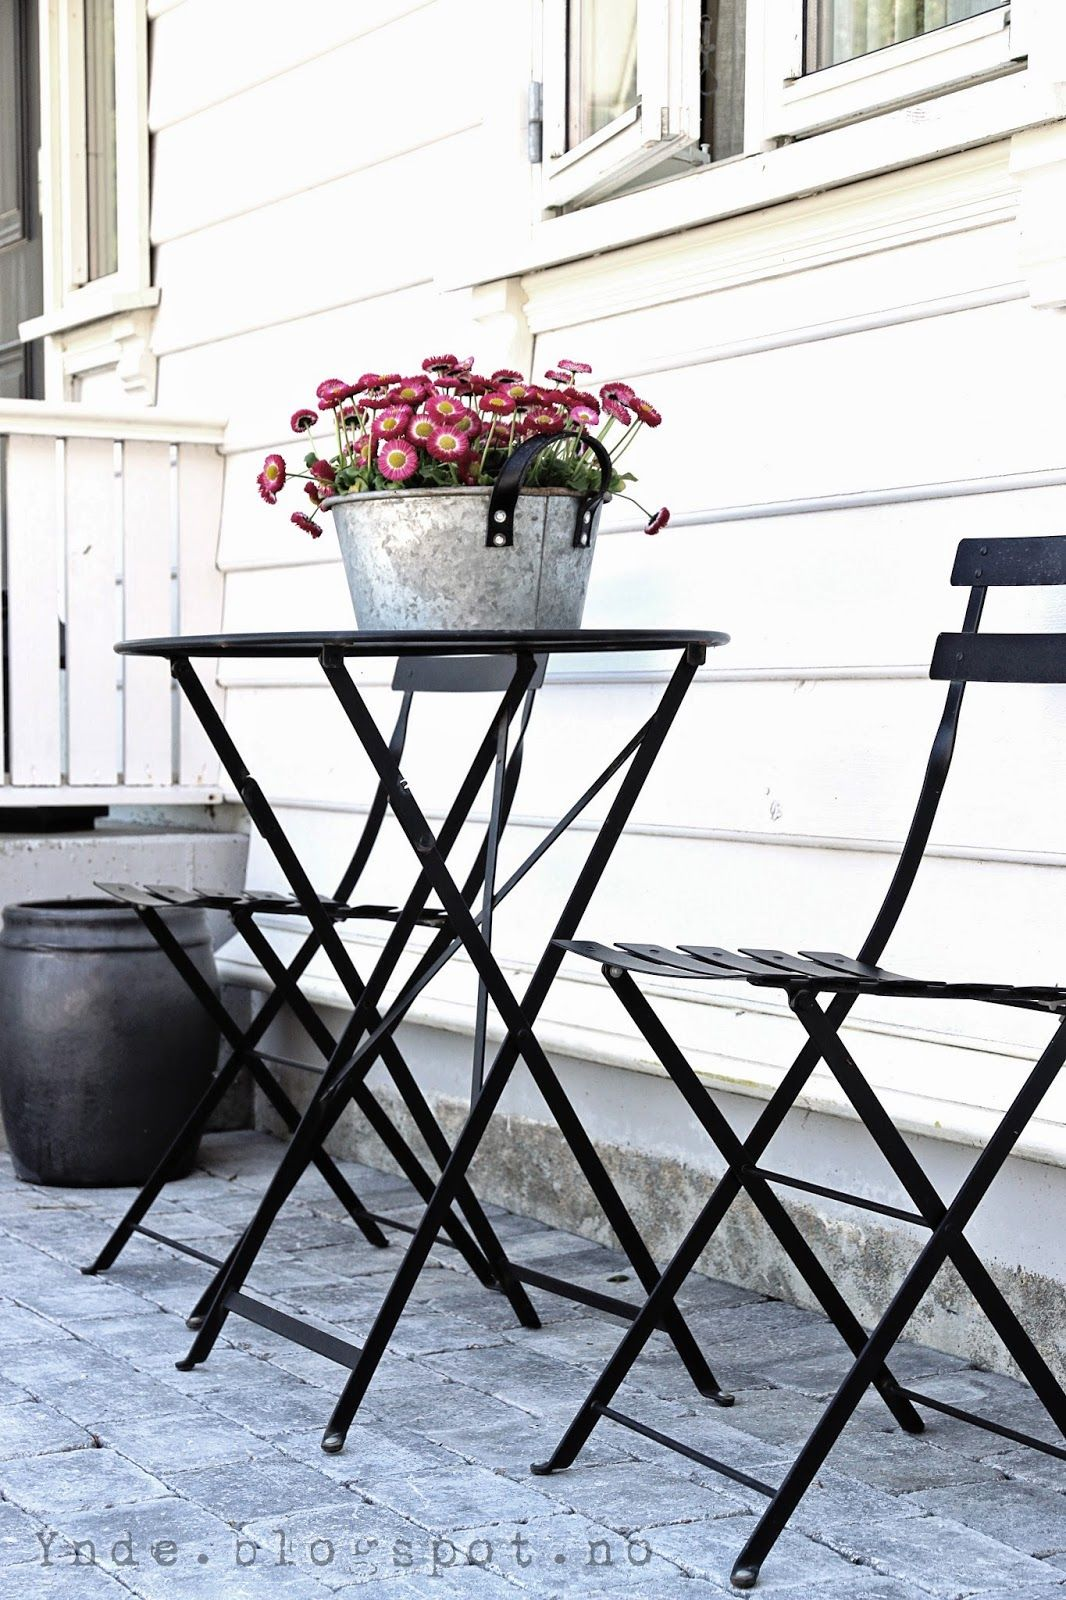 fermob outdoor furniture available at shoppigment and pigmentwishlist. Black Bedroom Furniture Sets. Home Design Ideas